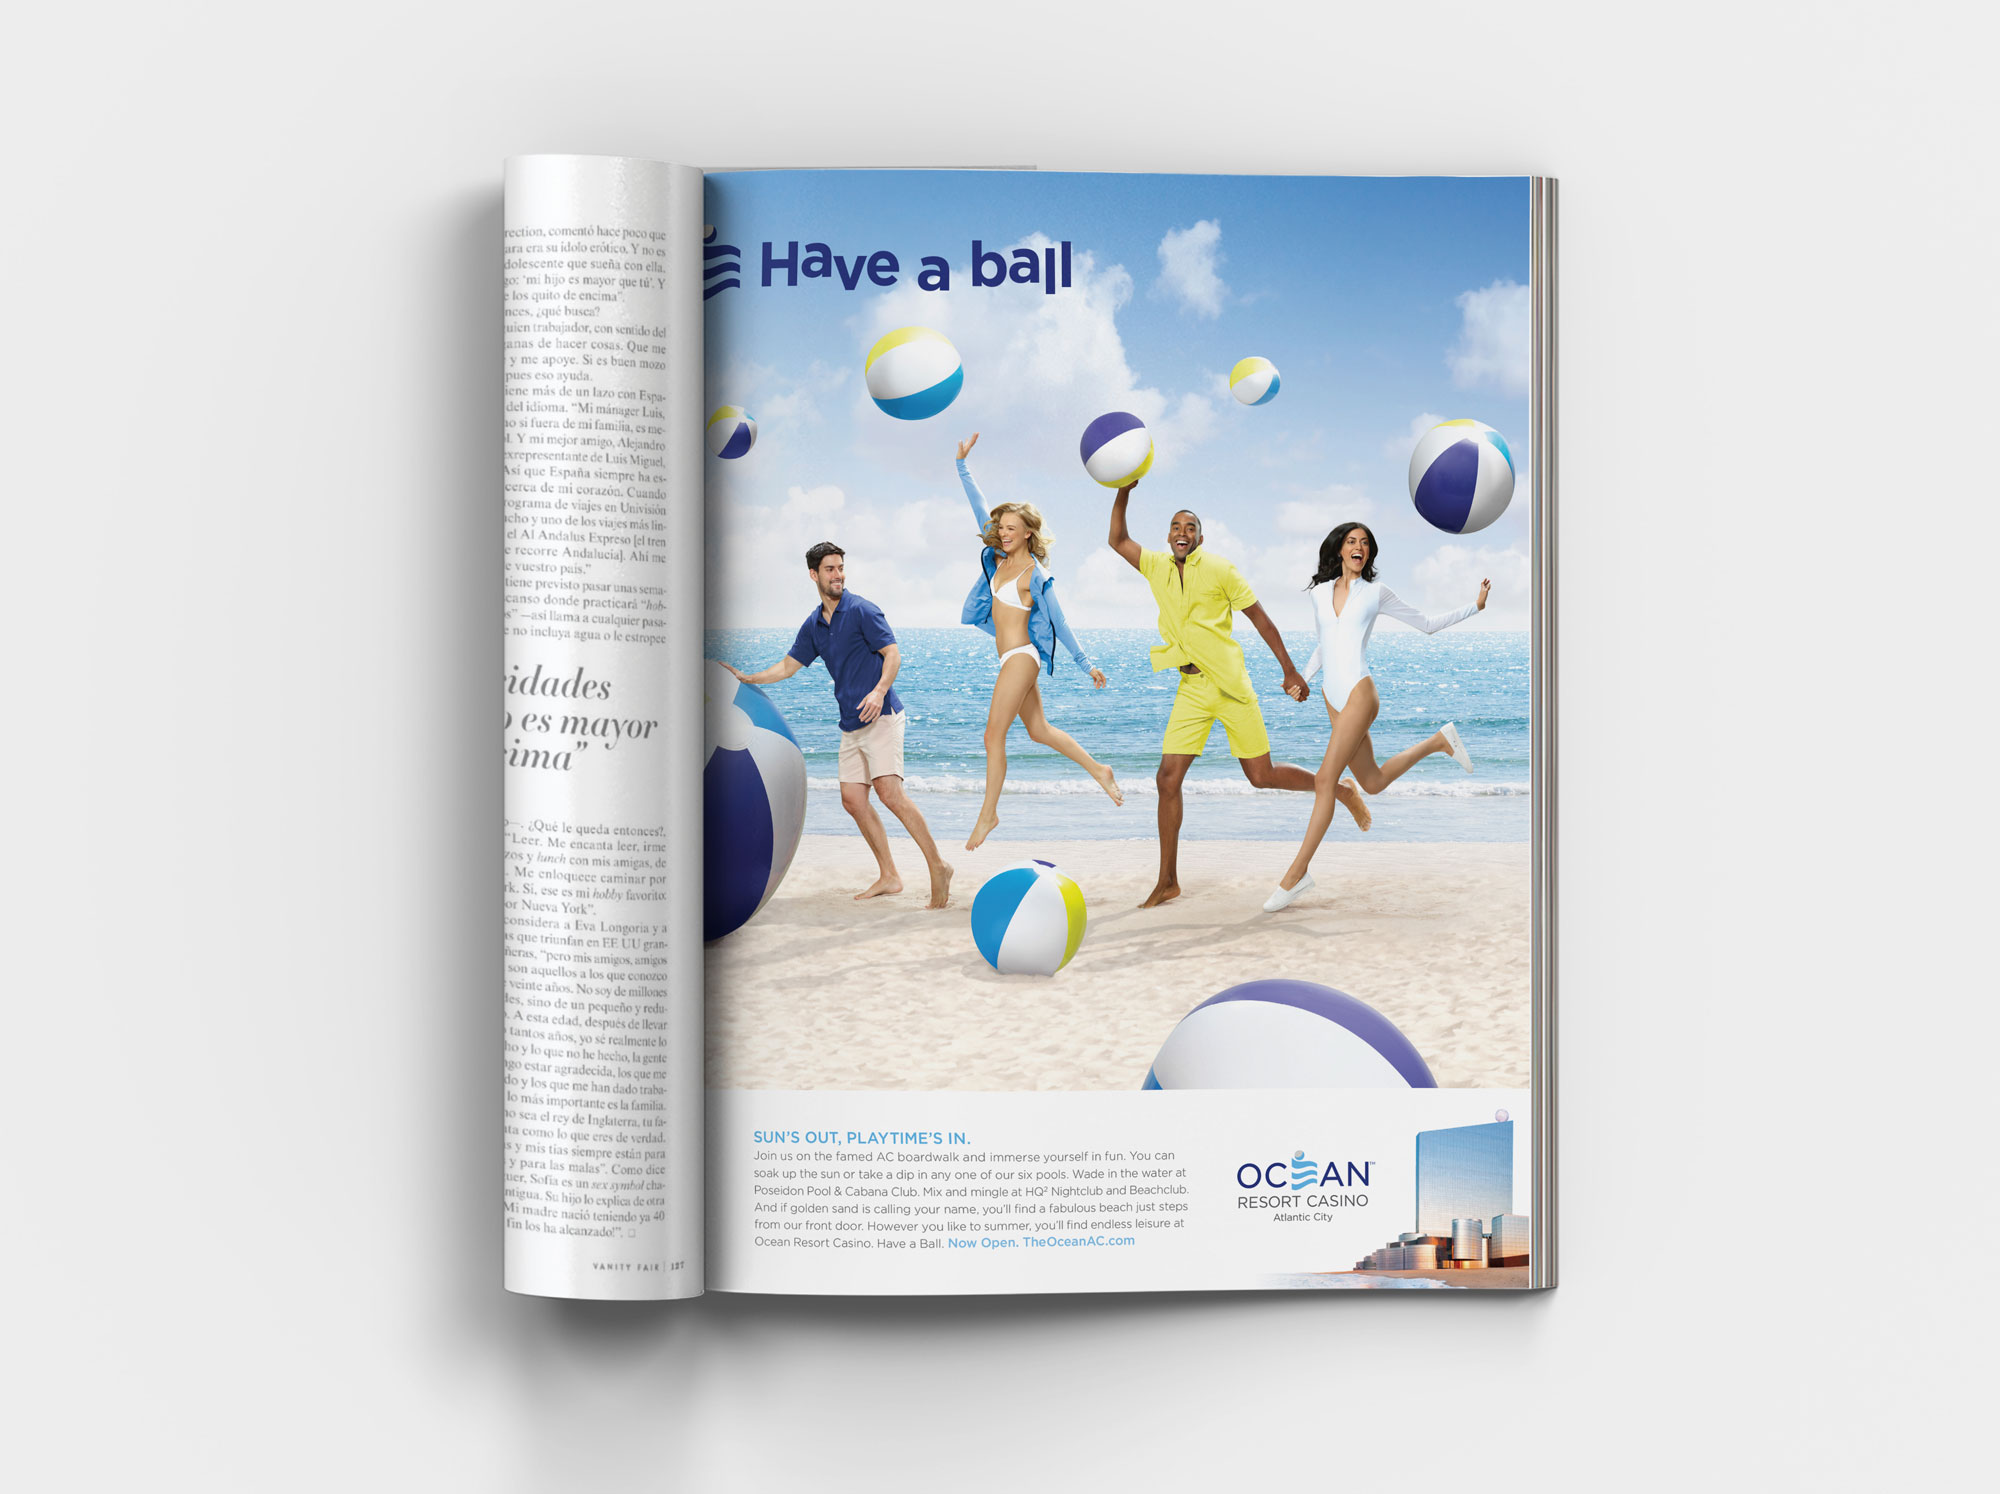 Beach ball ad